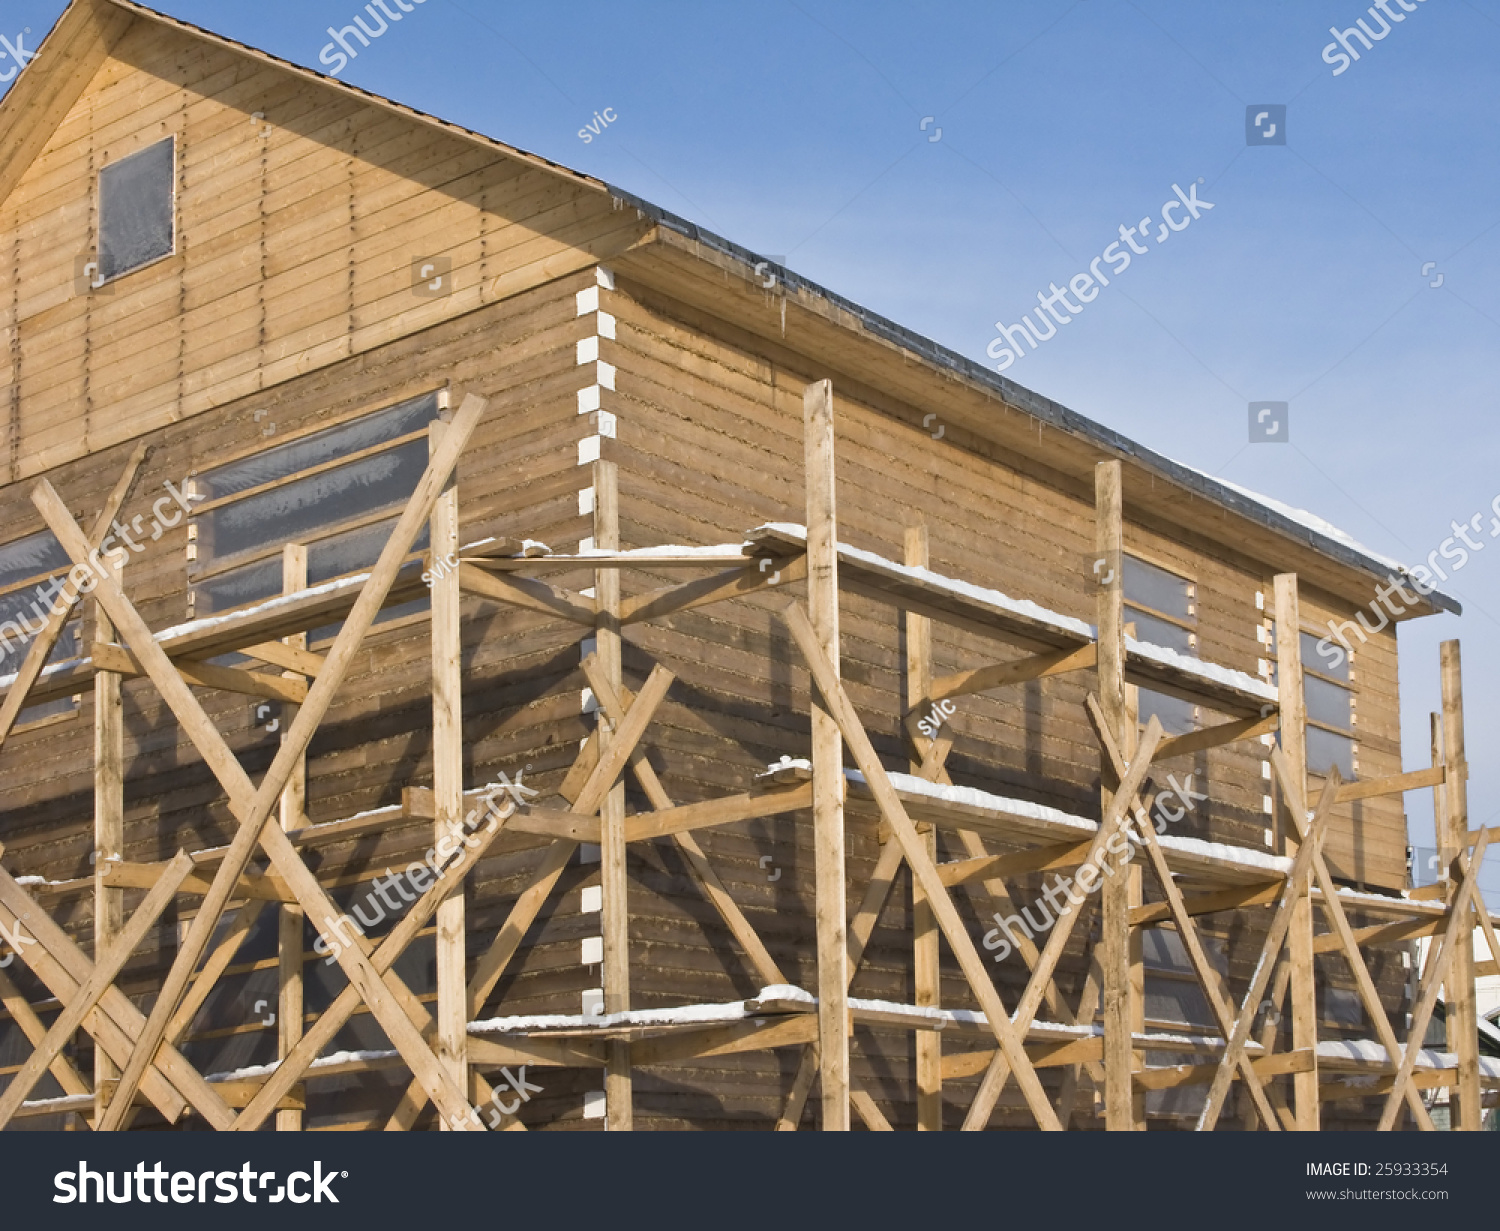 how to build a wood scaffold tower